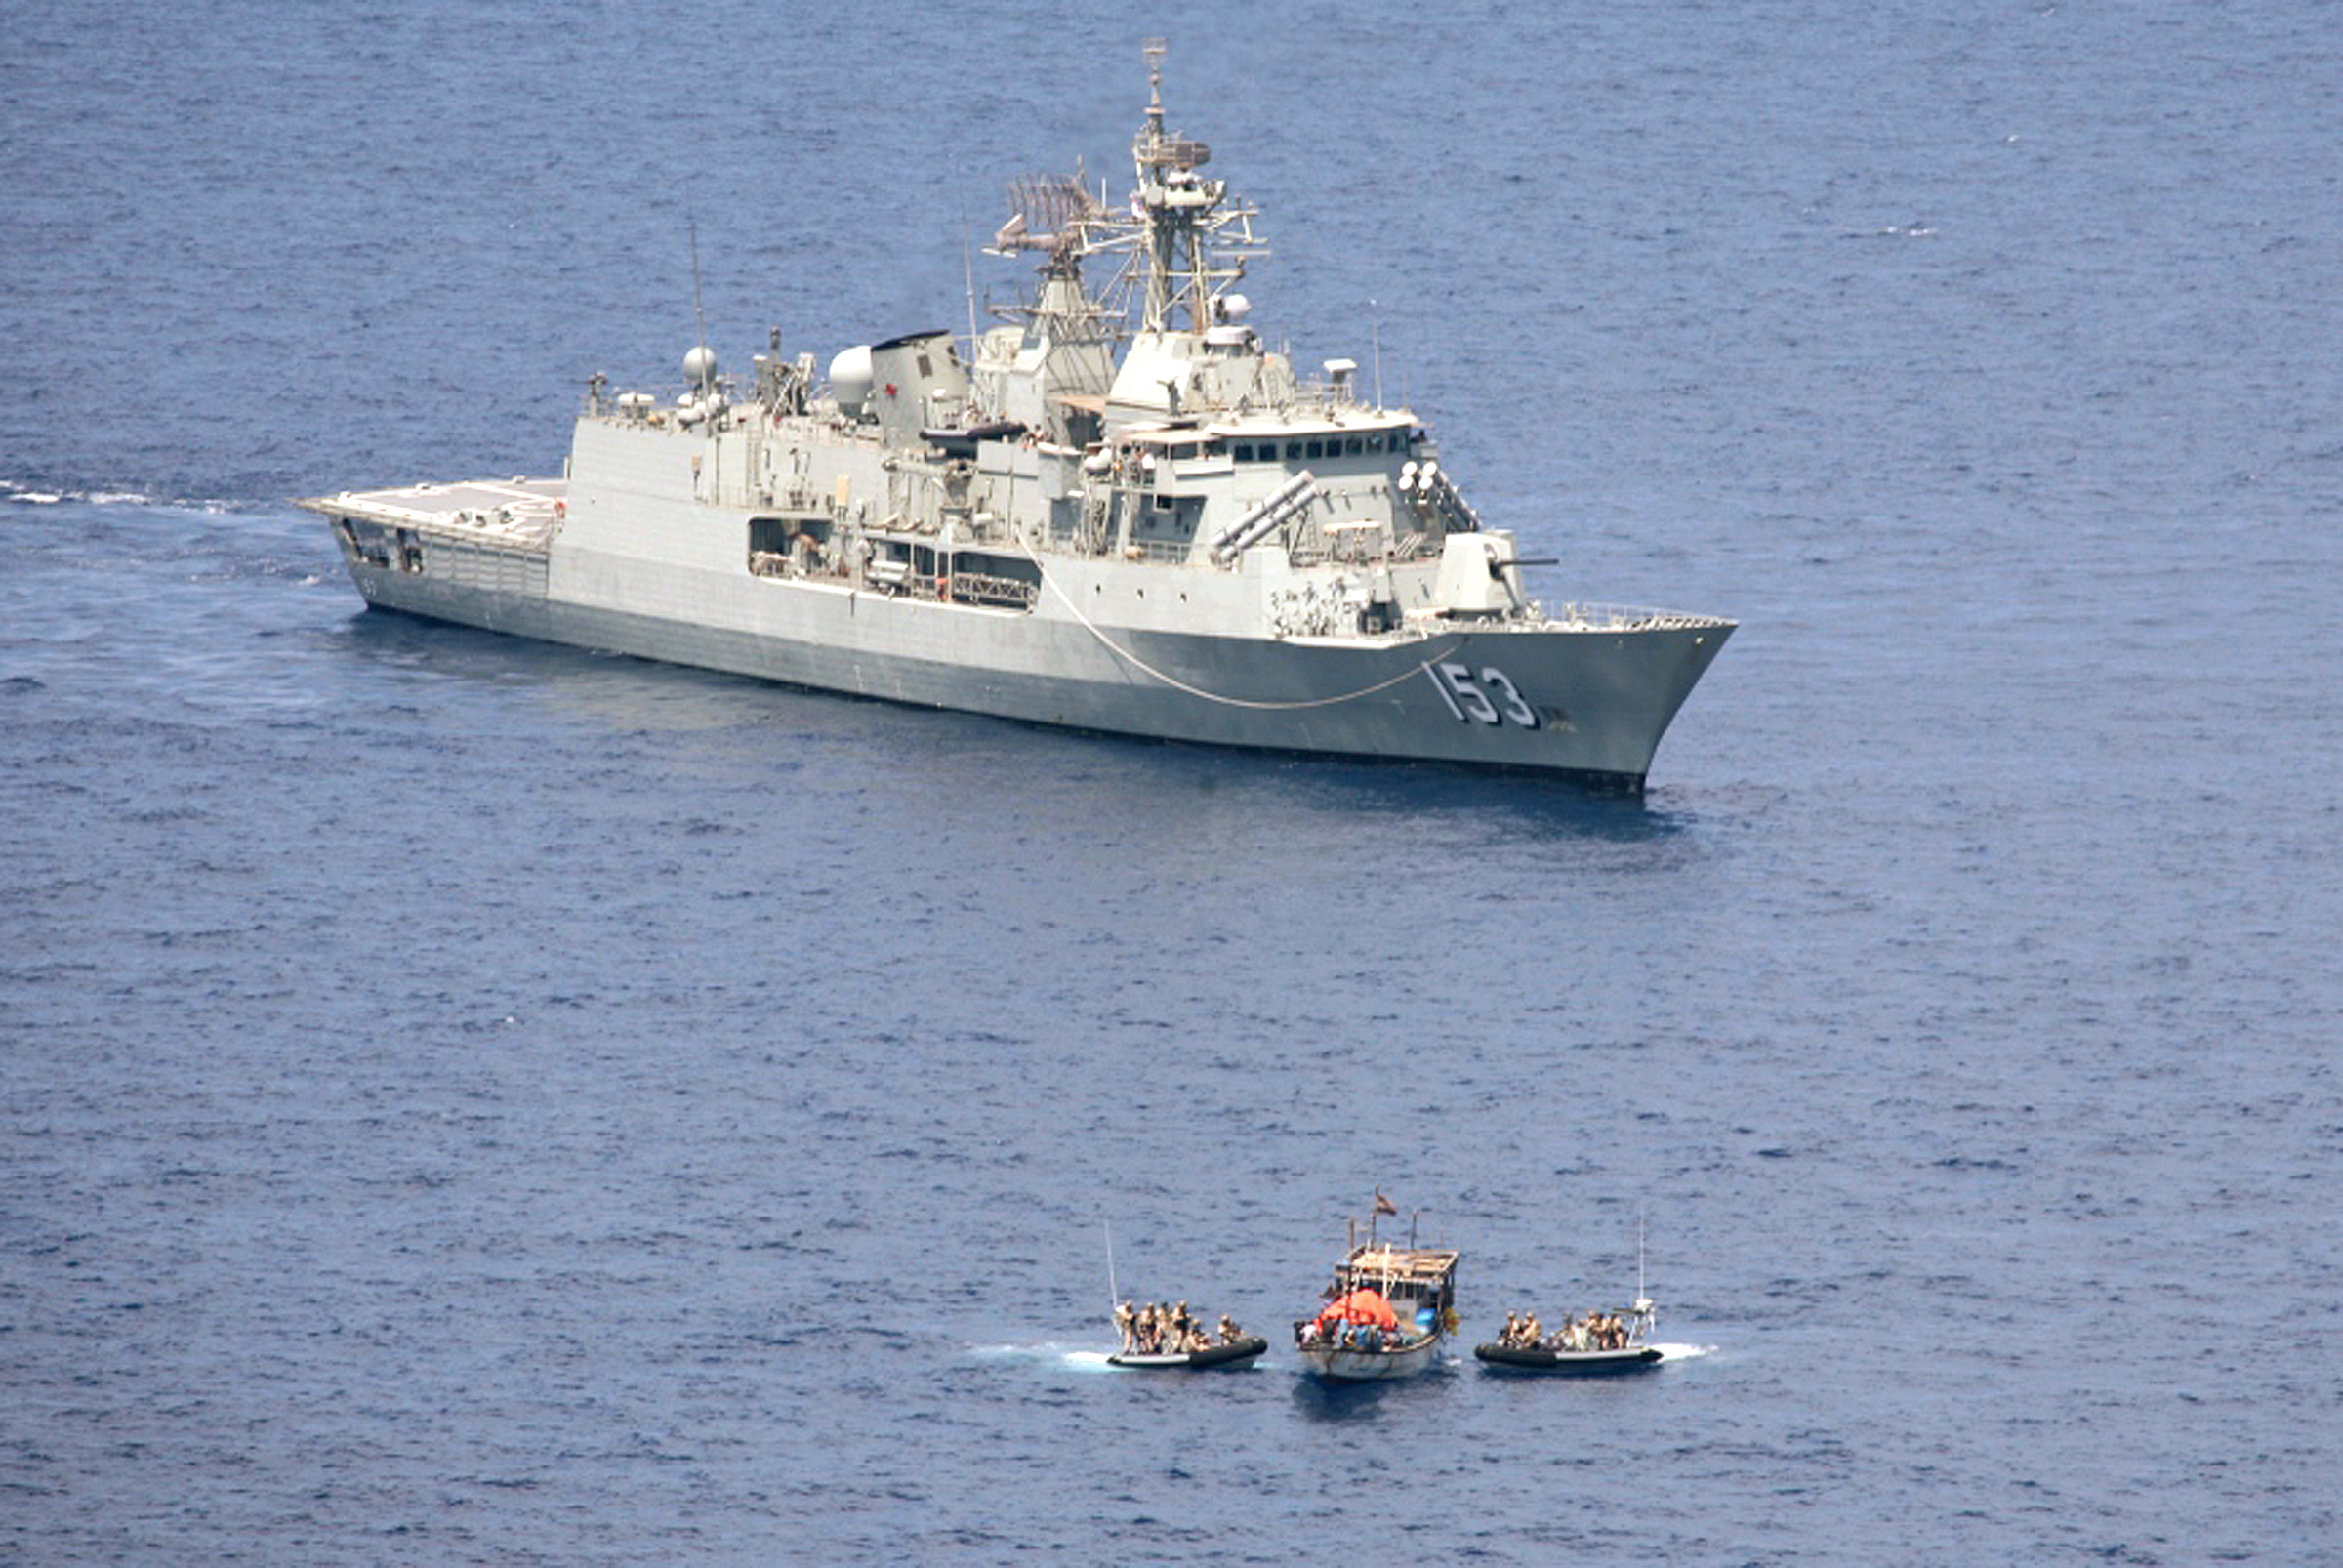 A Top Navy officer warns piracy may spill over into terrorism